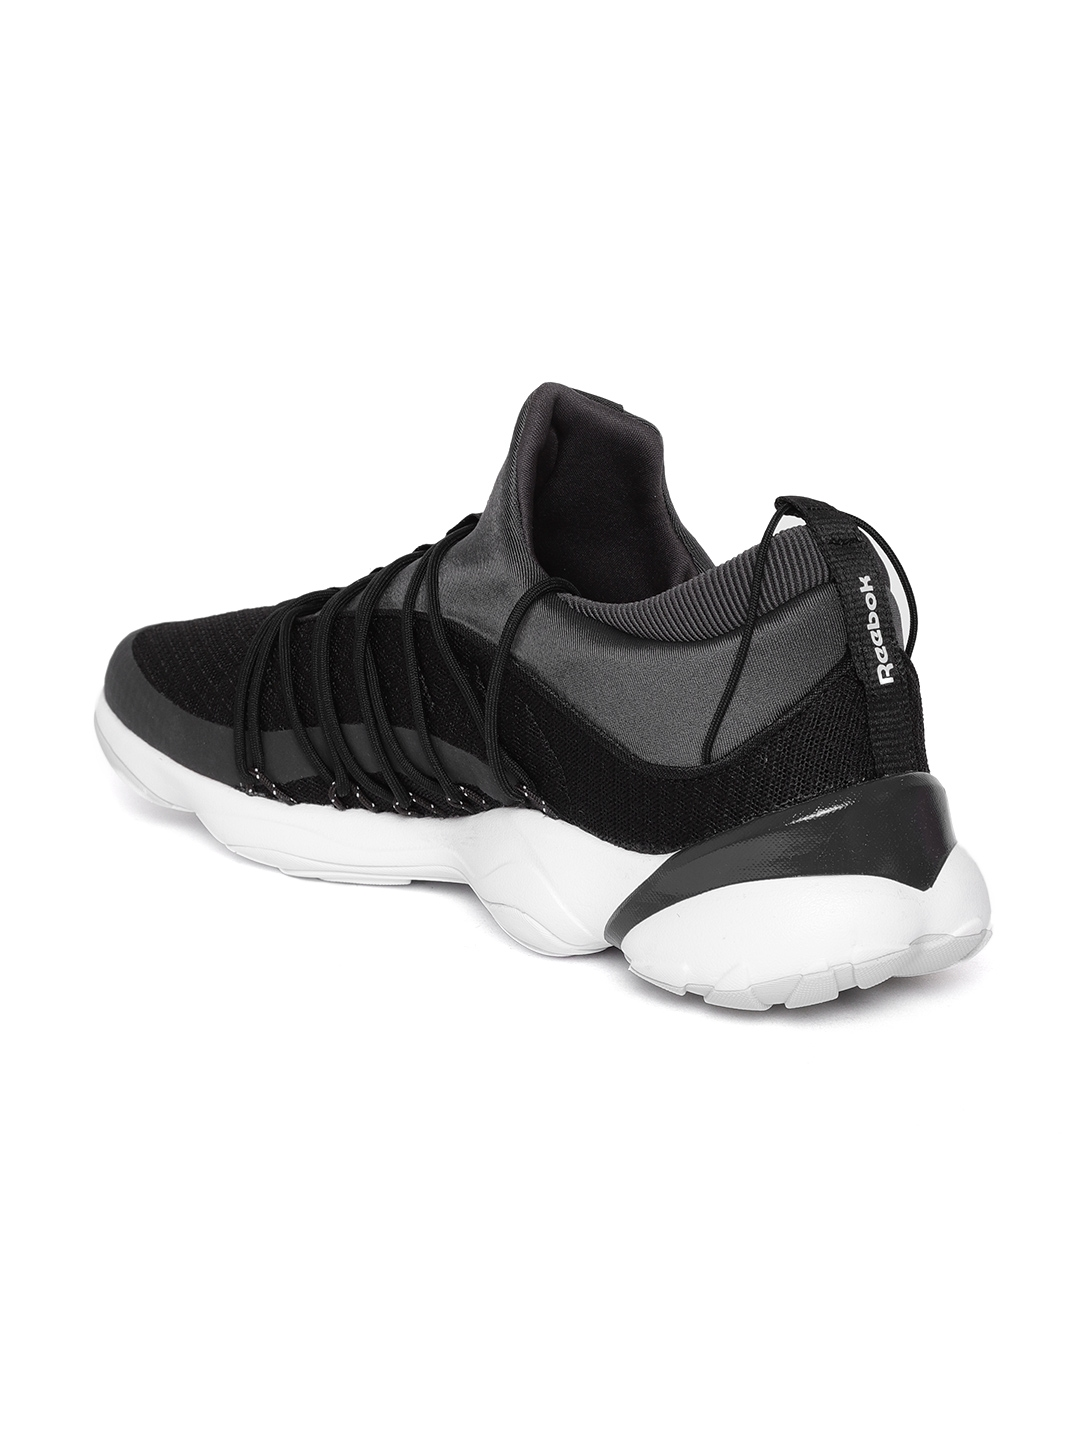 9f9fdcc4855a Buy Reebok Classic Unisex Black DMX Fusion Lite Sneakers - Casual ...